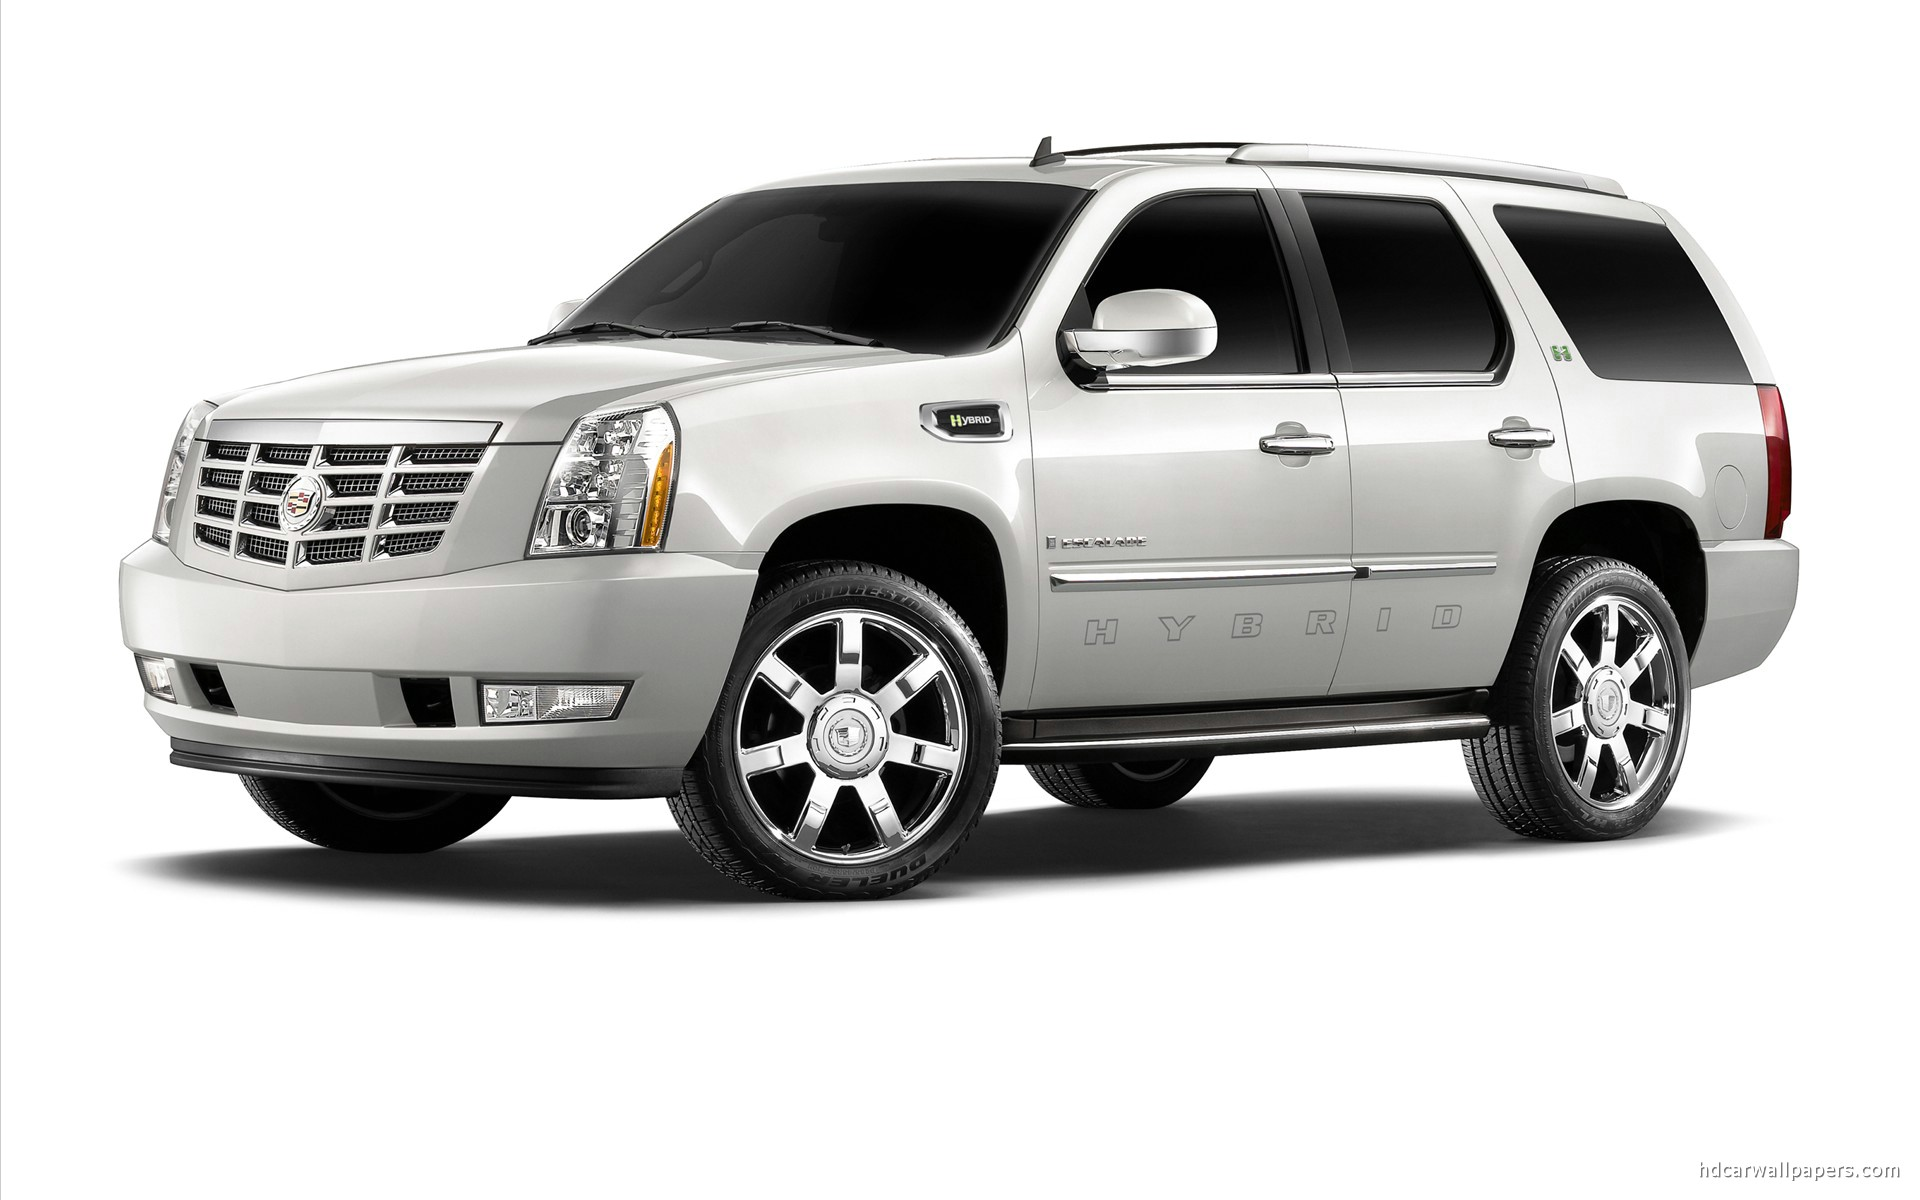 cadillac escalade hybrid 2009 wallpaper hd car wallpapers id 517. Black Bedroom Furniture Sets. Home Design Ideas